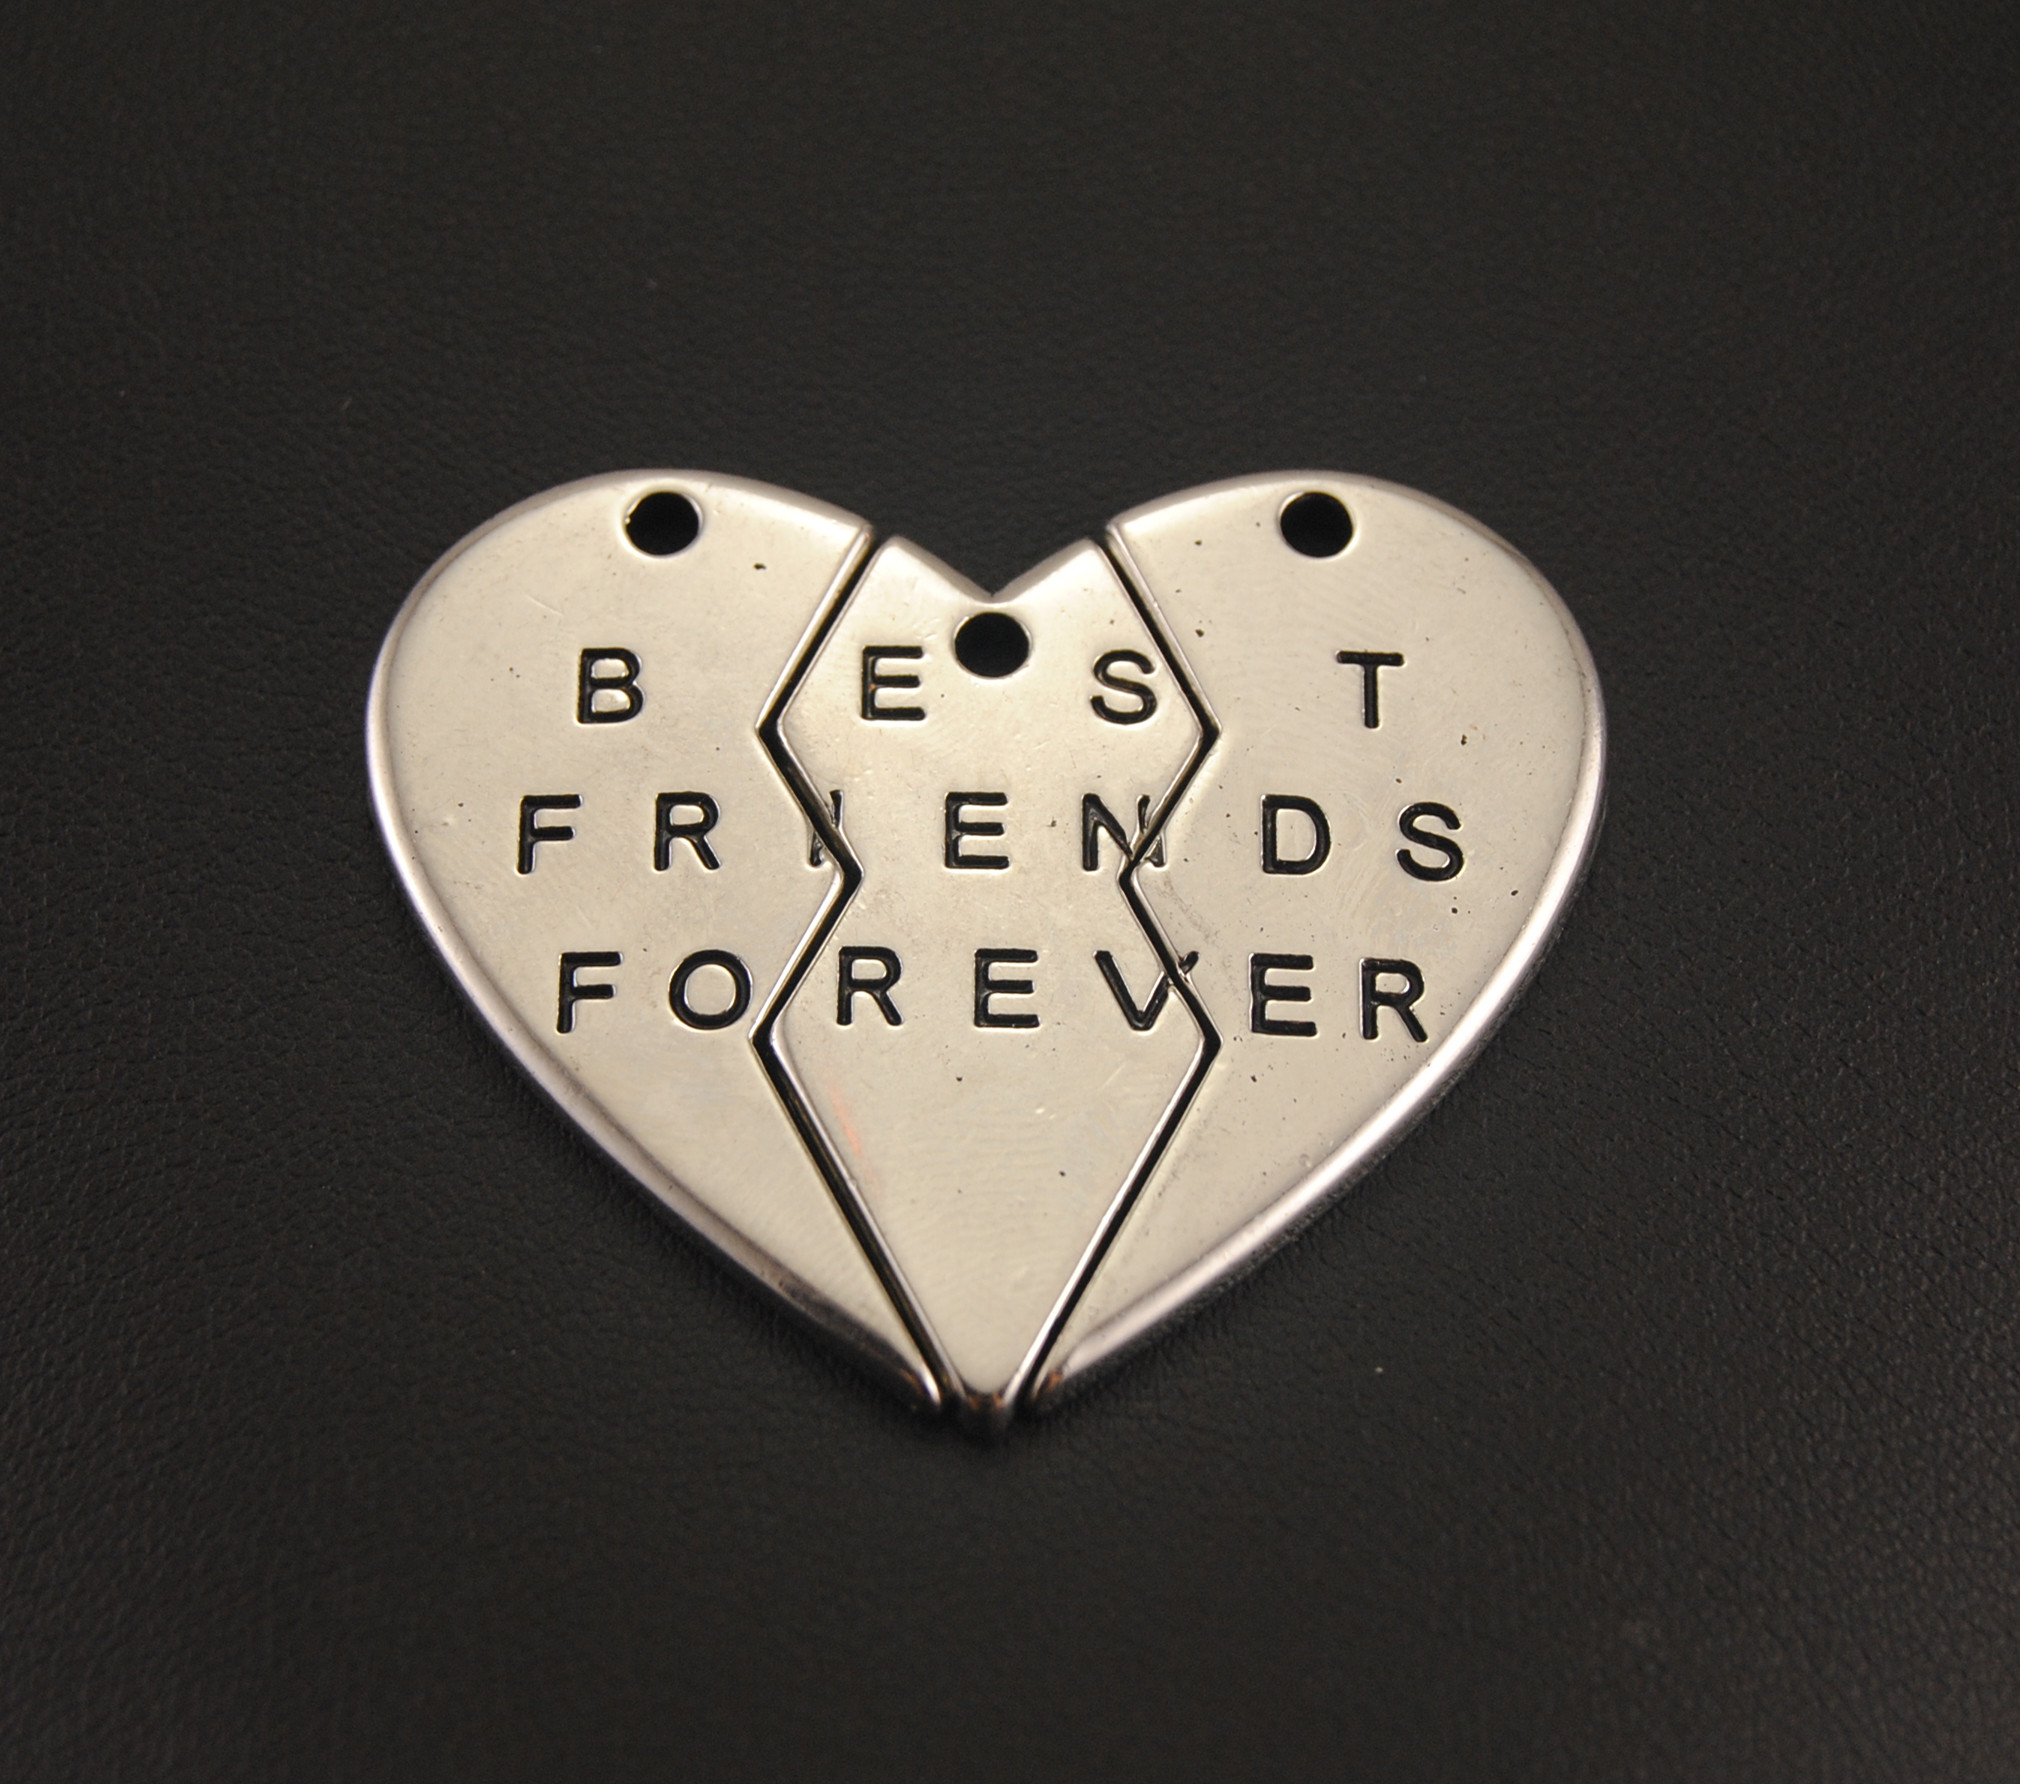 1 set best friends forever broken hearts split hearts jigsaw